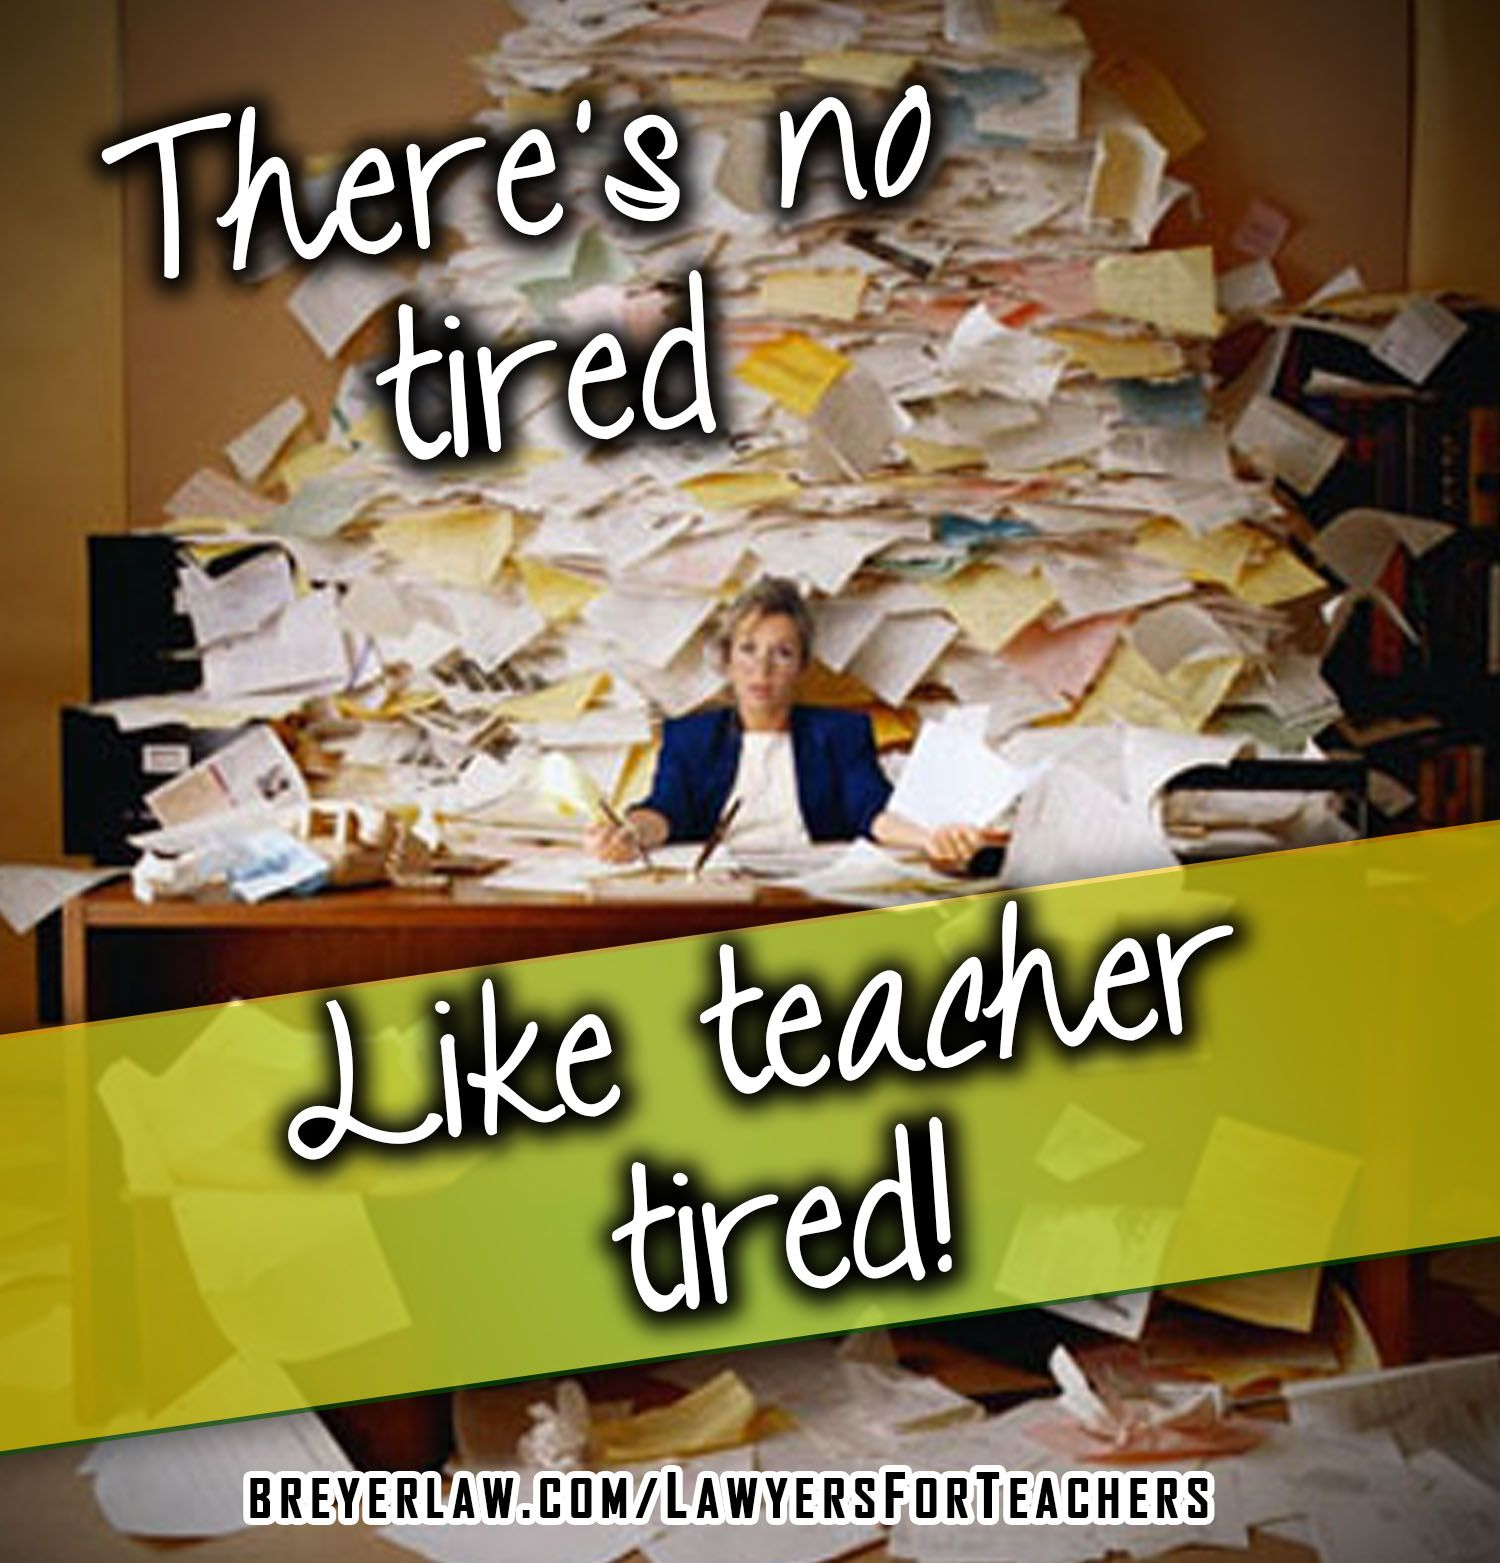 There's no tired like teacher tired. Breyer Law appreciates ...